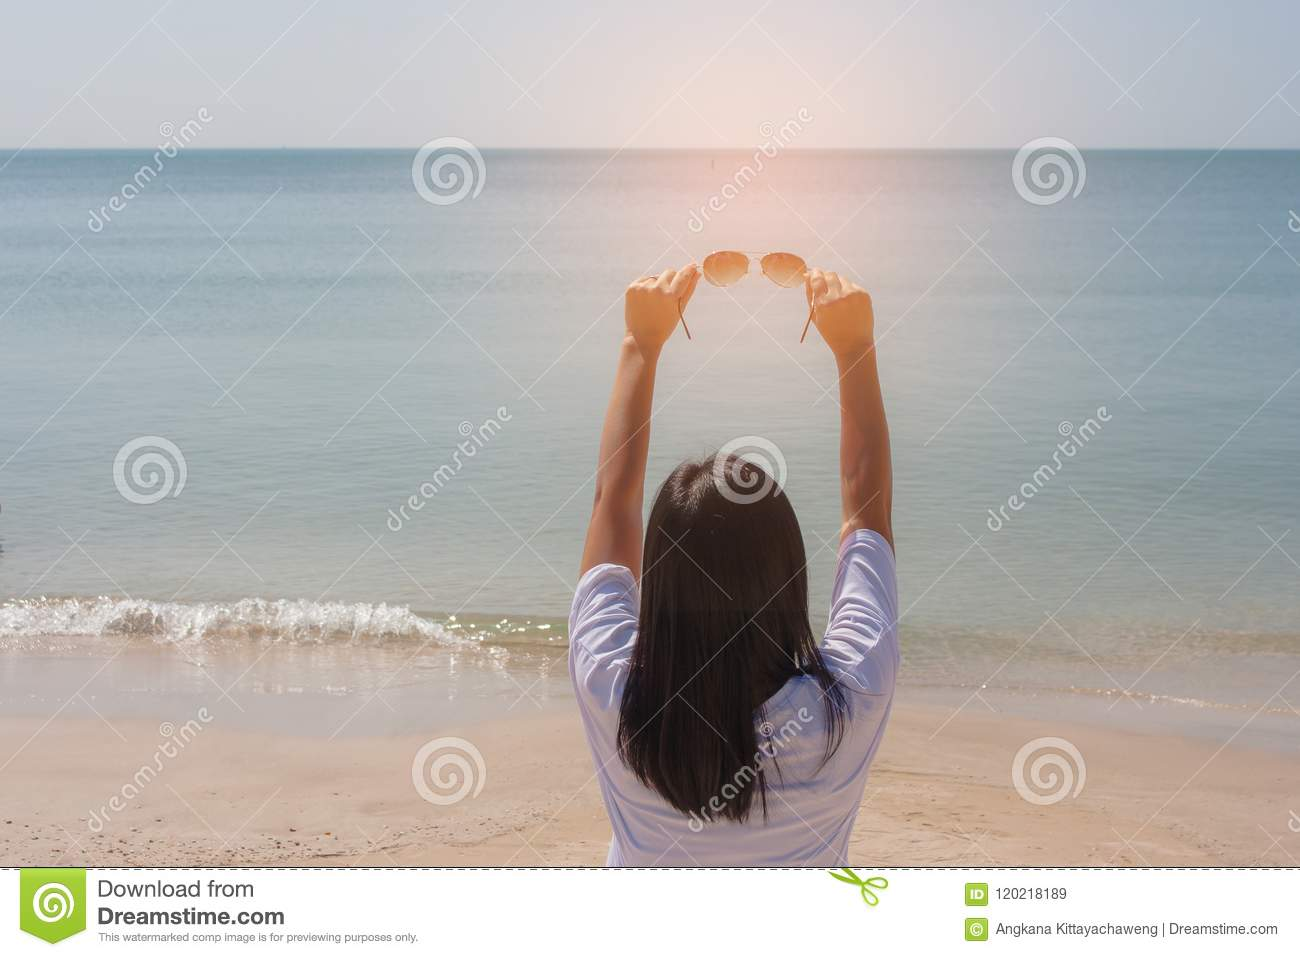 Summer Vacation and Holiday Concept : Woman standing on sand beach. She holding sunglasses in her hand.